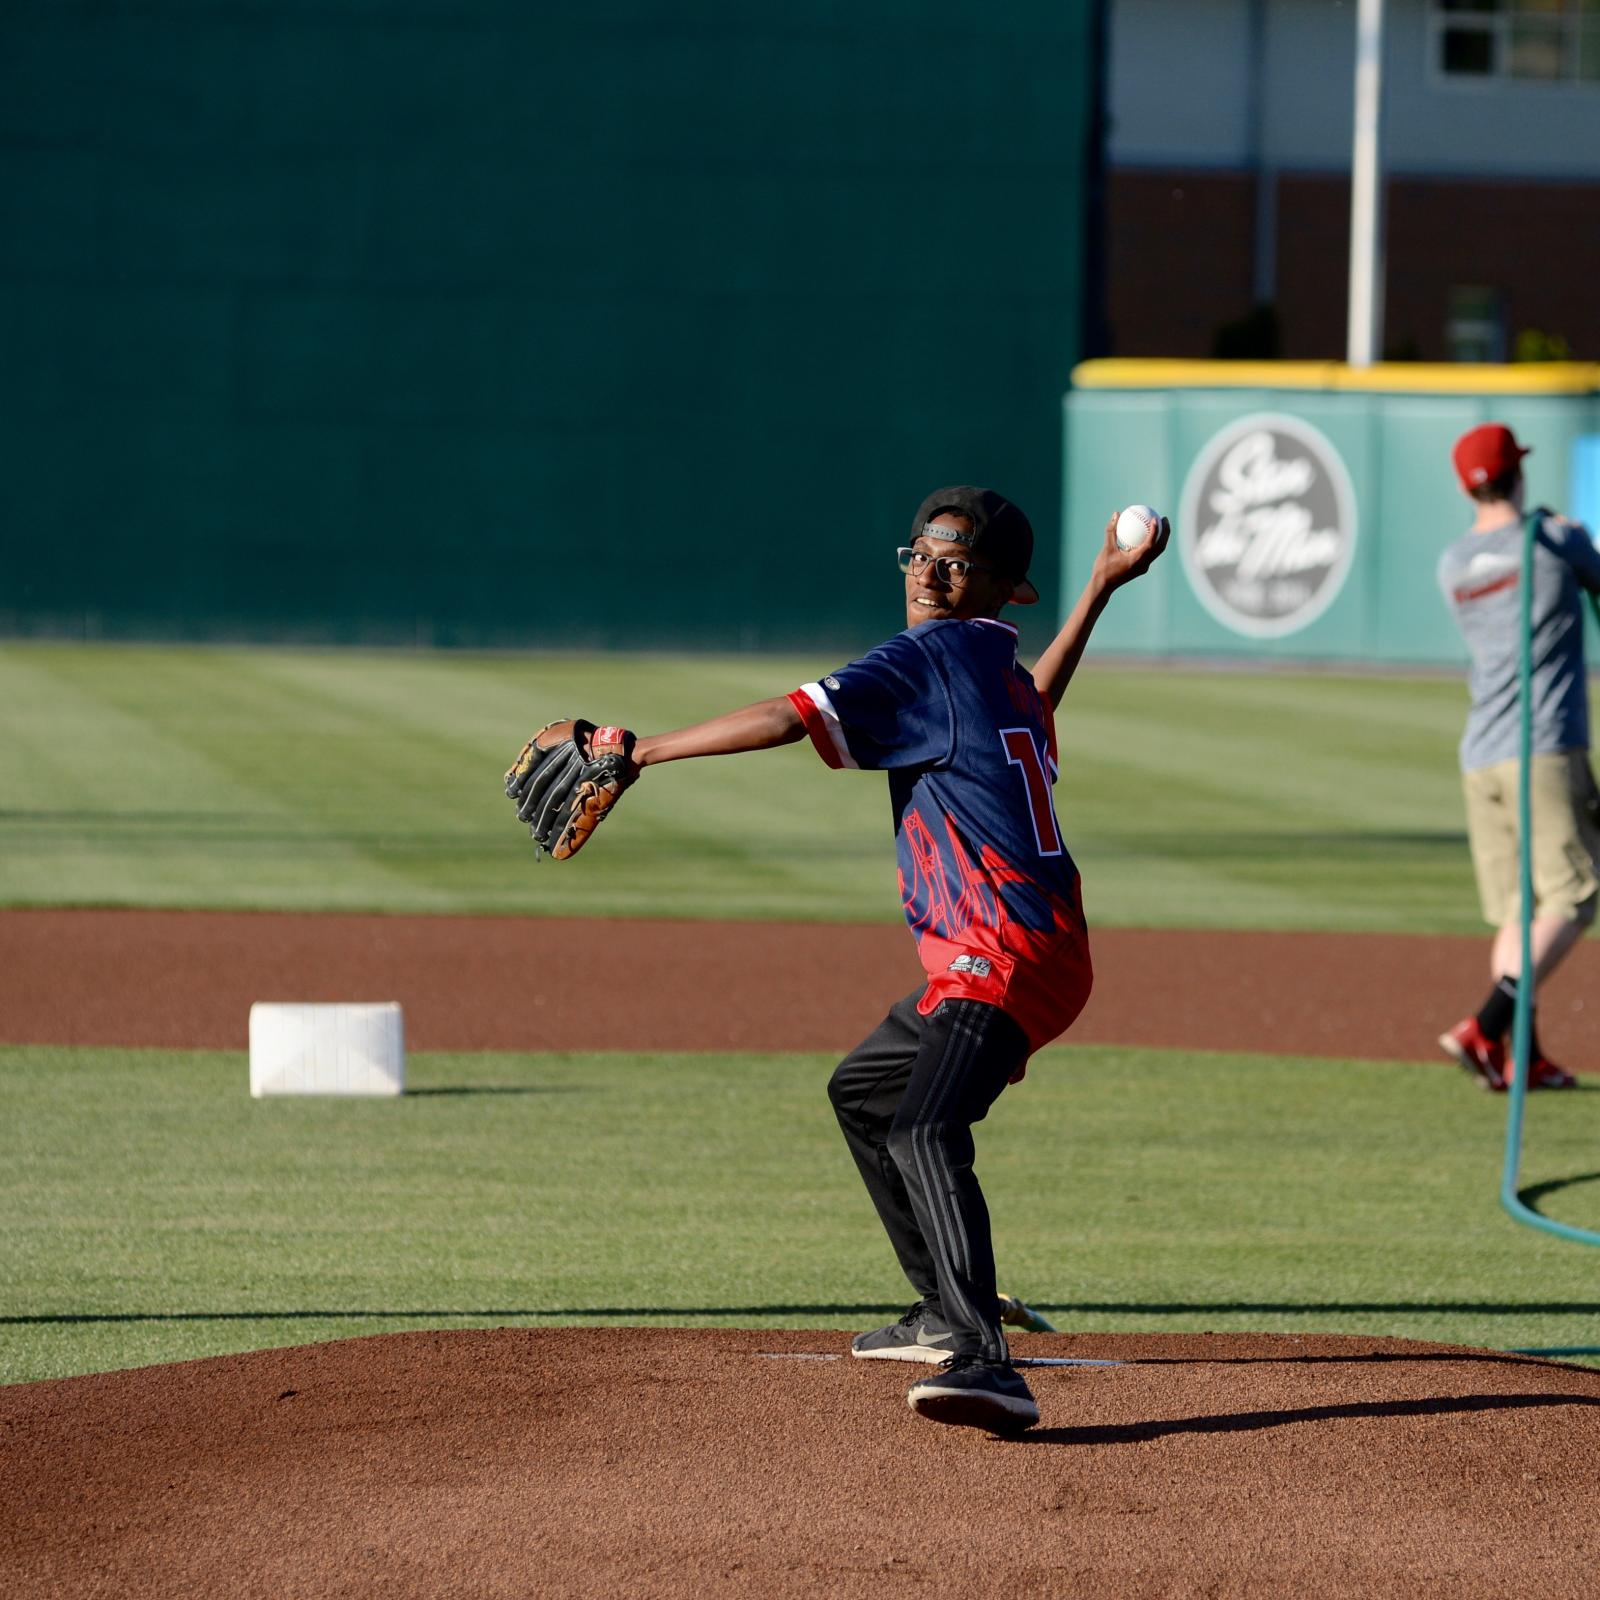 Isayas's first pitch for the Rainiers